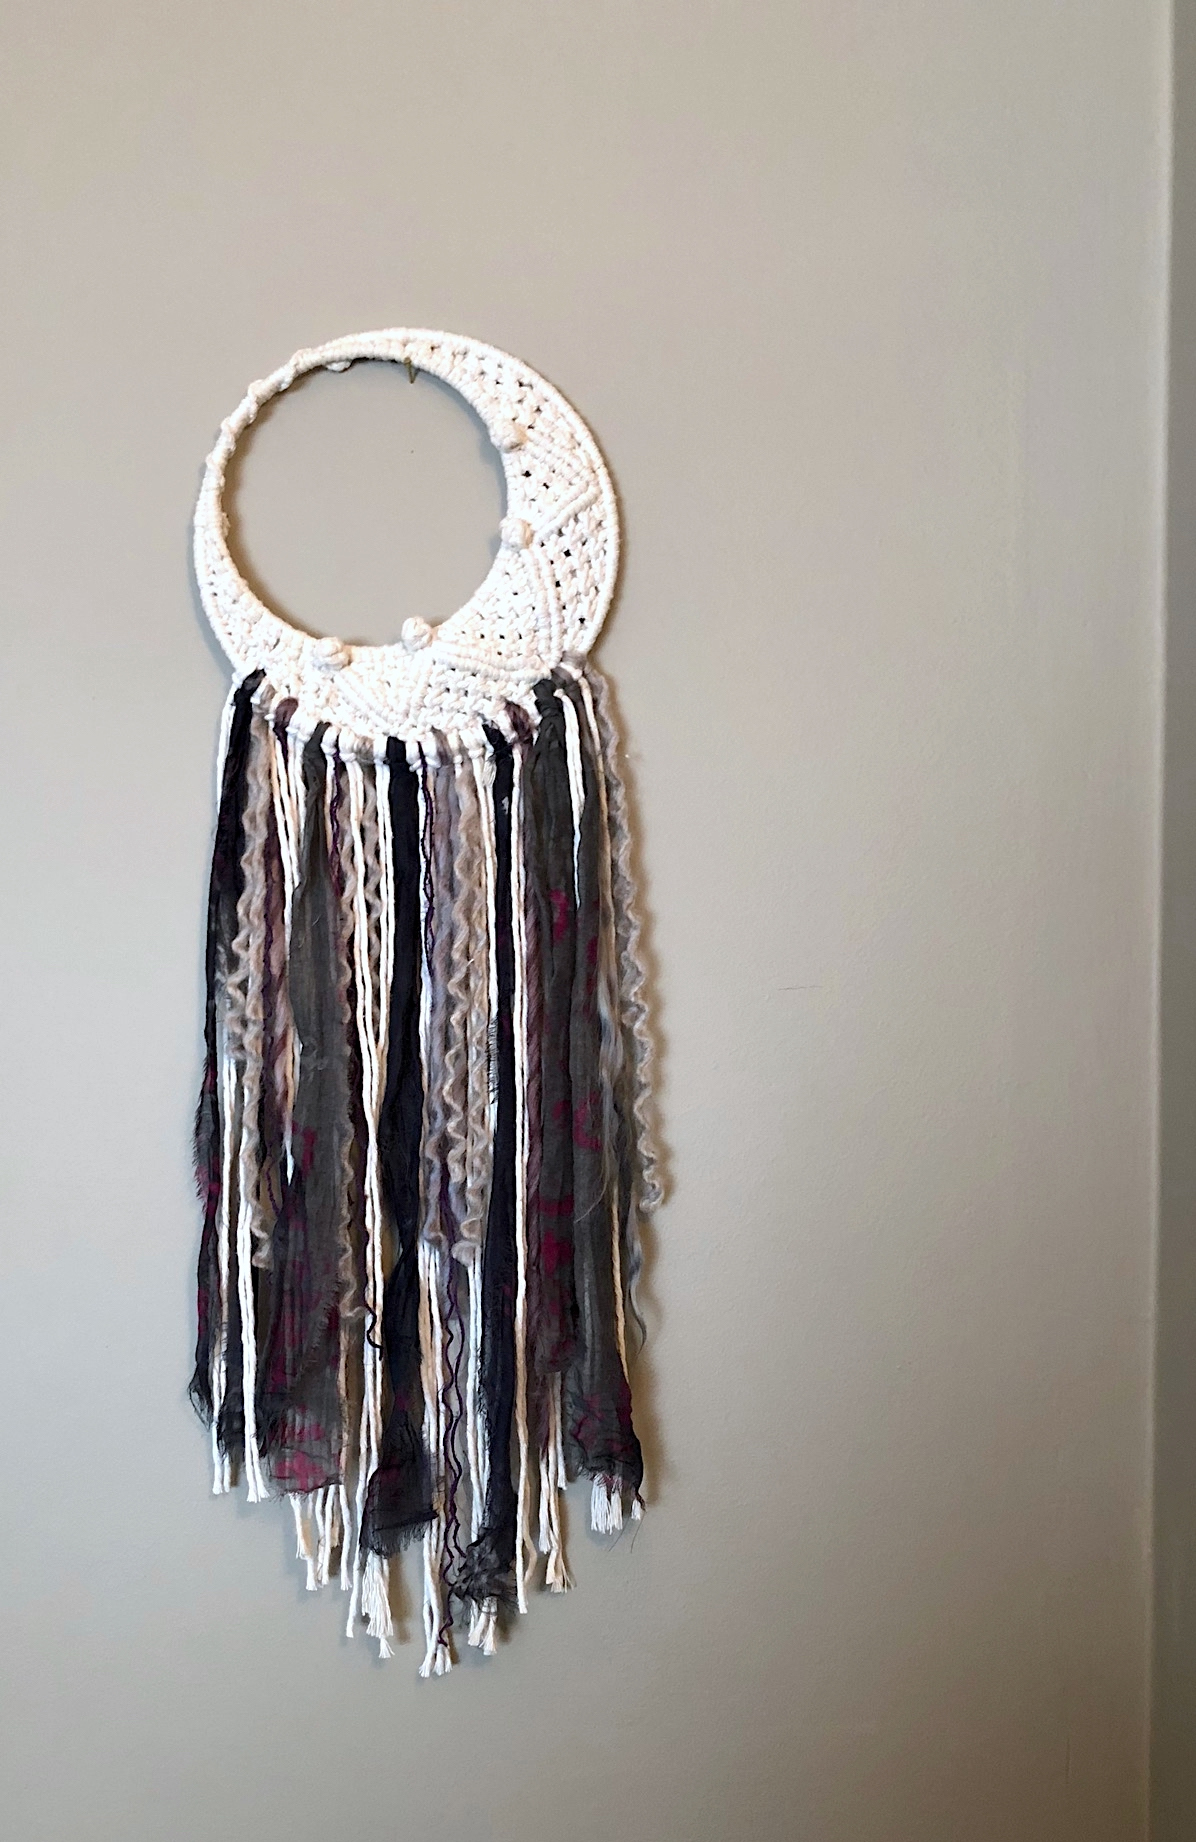 Large mixed-media half-moon dreamcatcher - sold